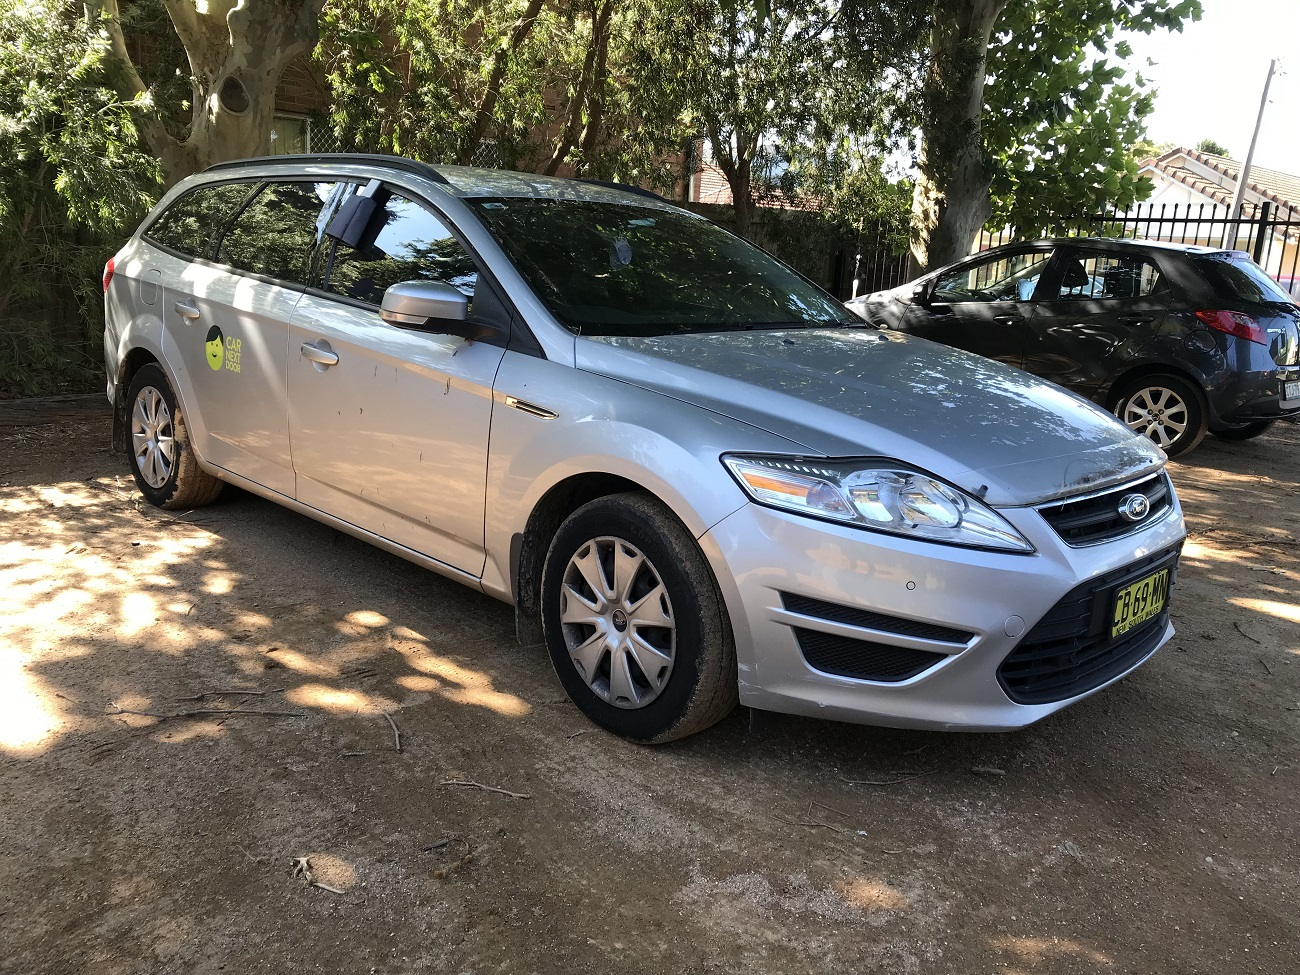 Picture of Matej's 2014 Ford Mondeo